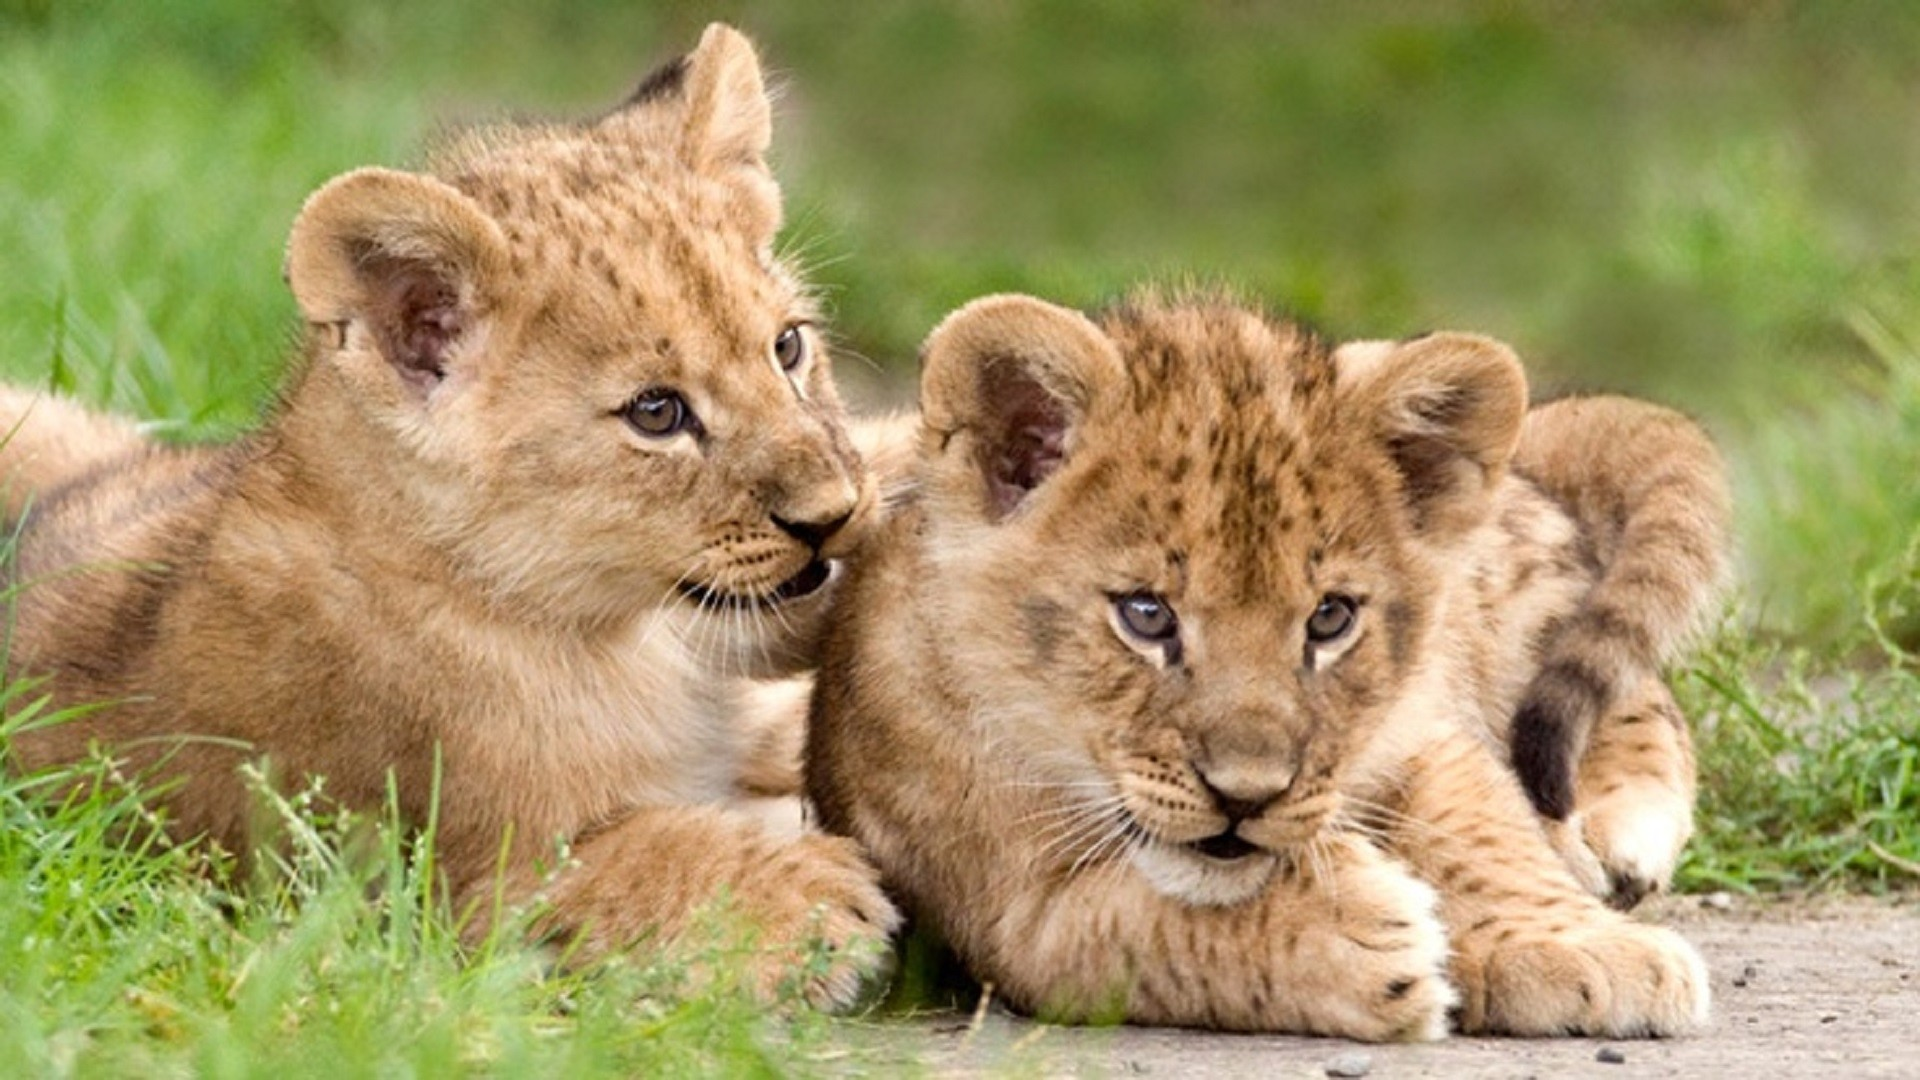 Lion Cubs Wallpaper Wallpapertag